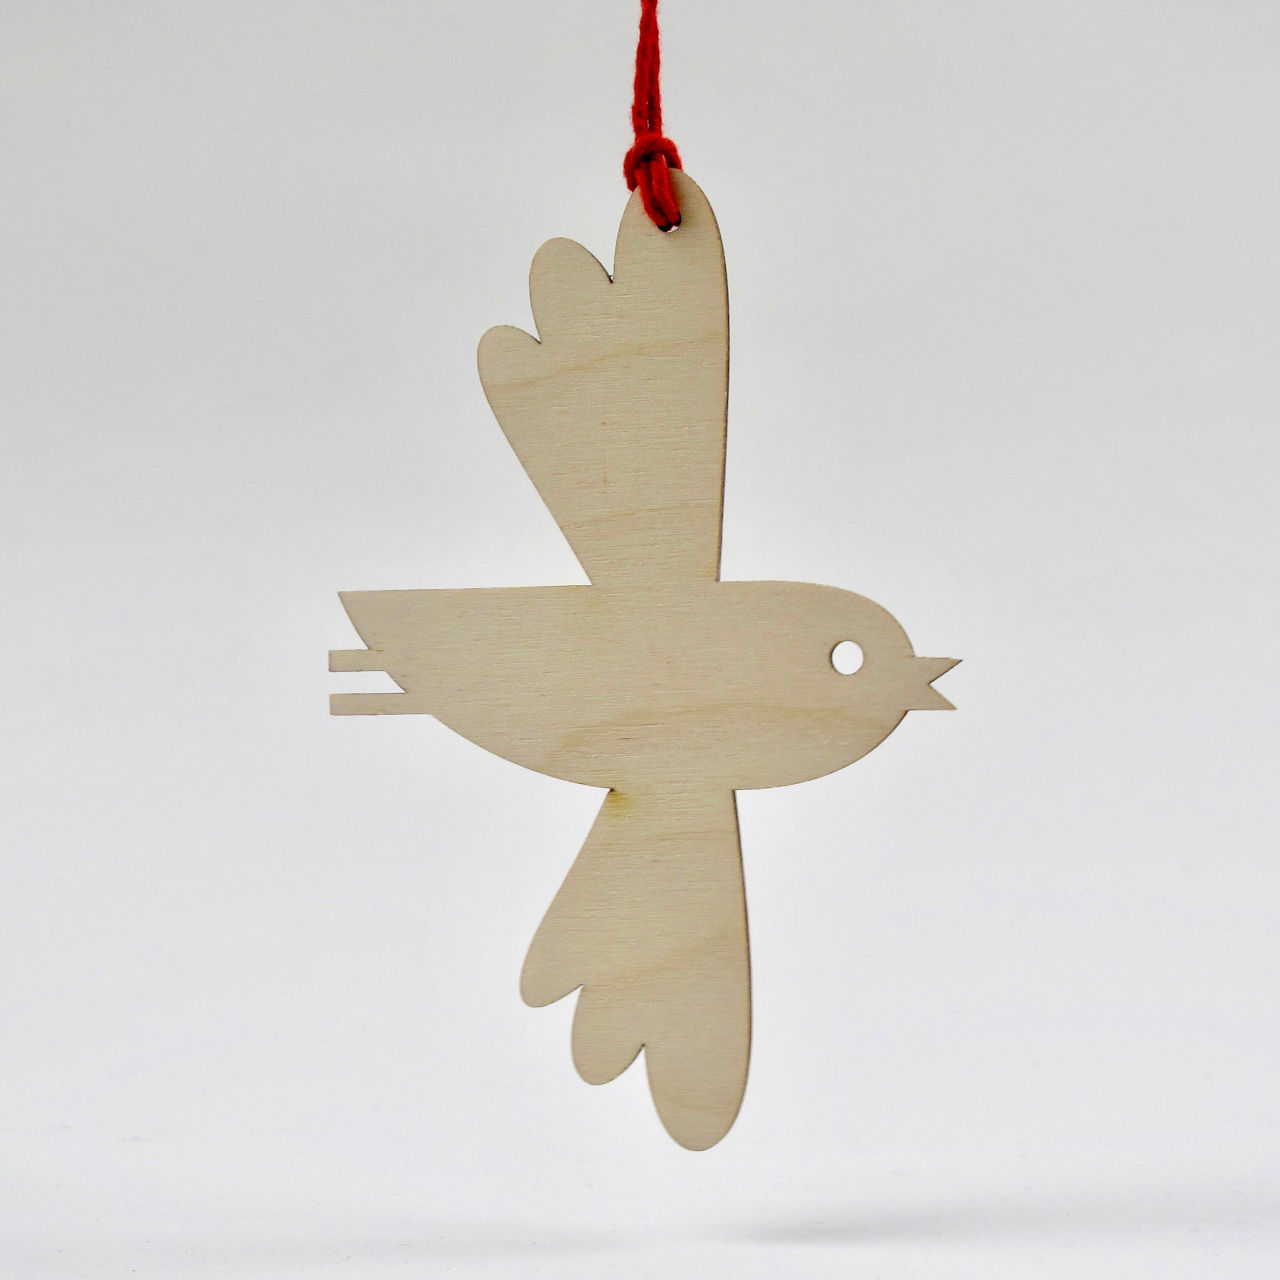 Plywood hanging dove decoration